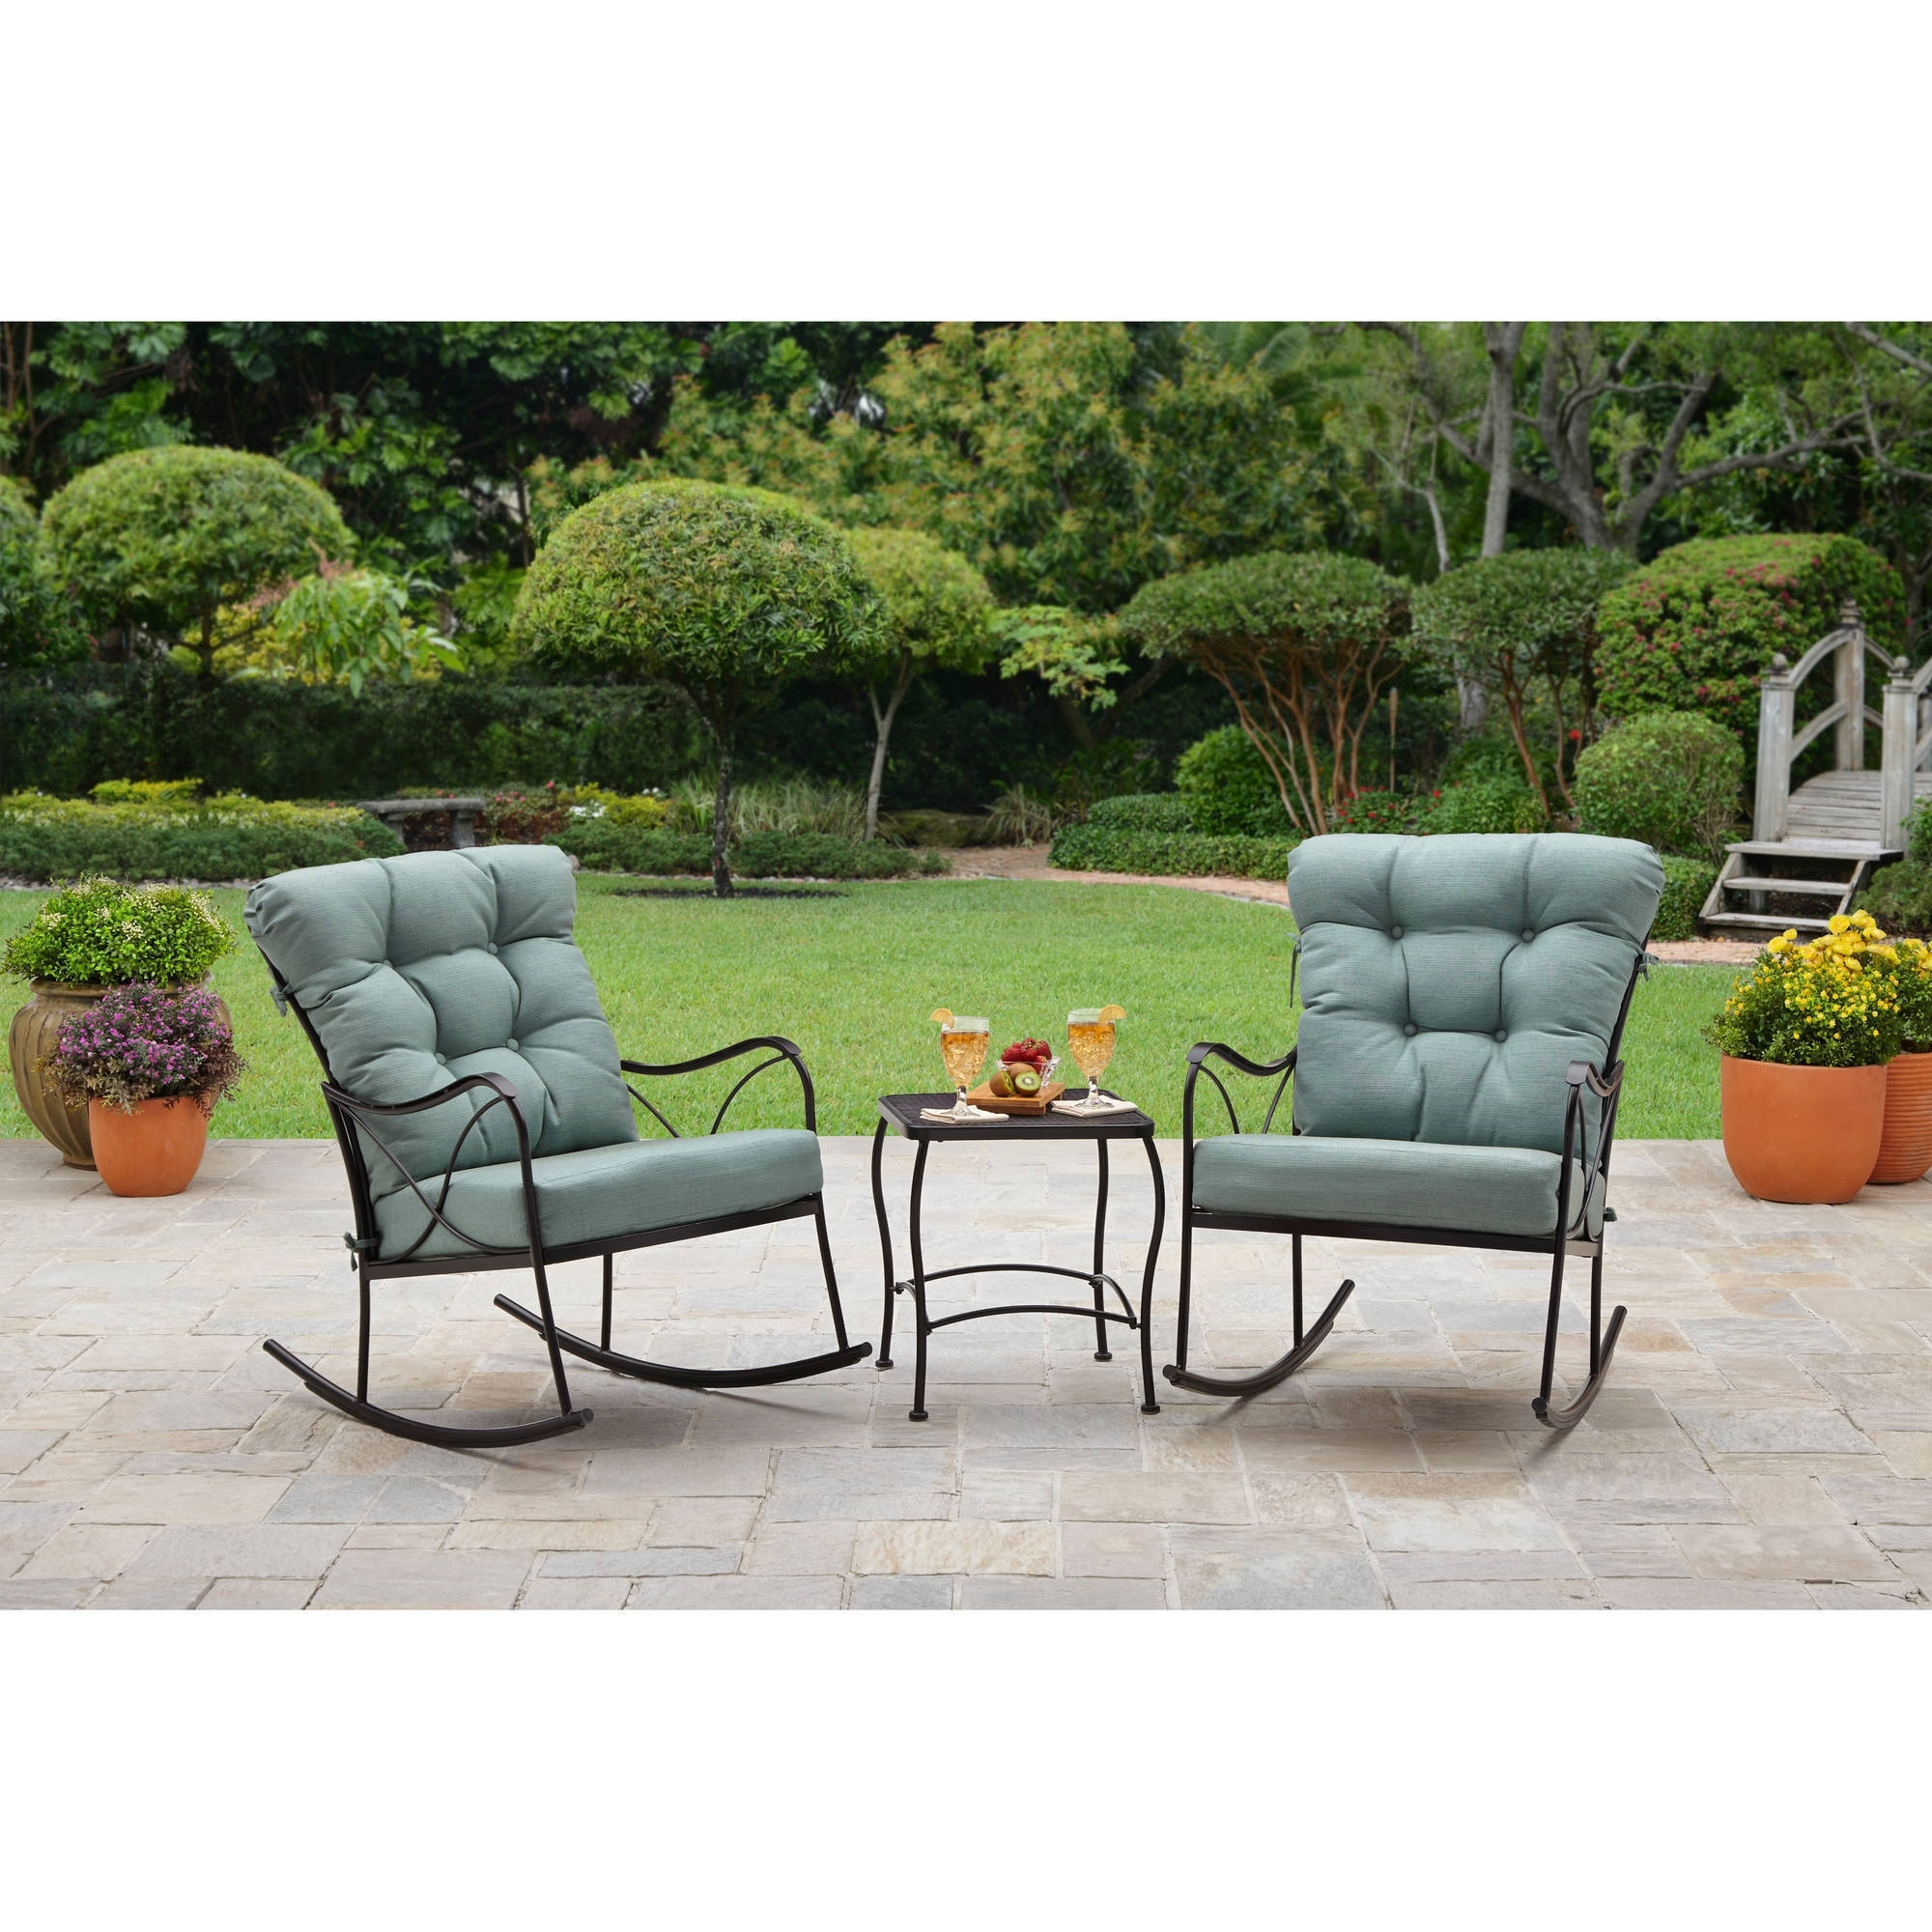 Better Homes And Gardens Seacliff 3 Piece Rocking Chair Bistro Set Regarding Patio Rocking Chairs And Table (View 2 of 15)